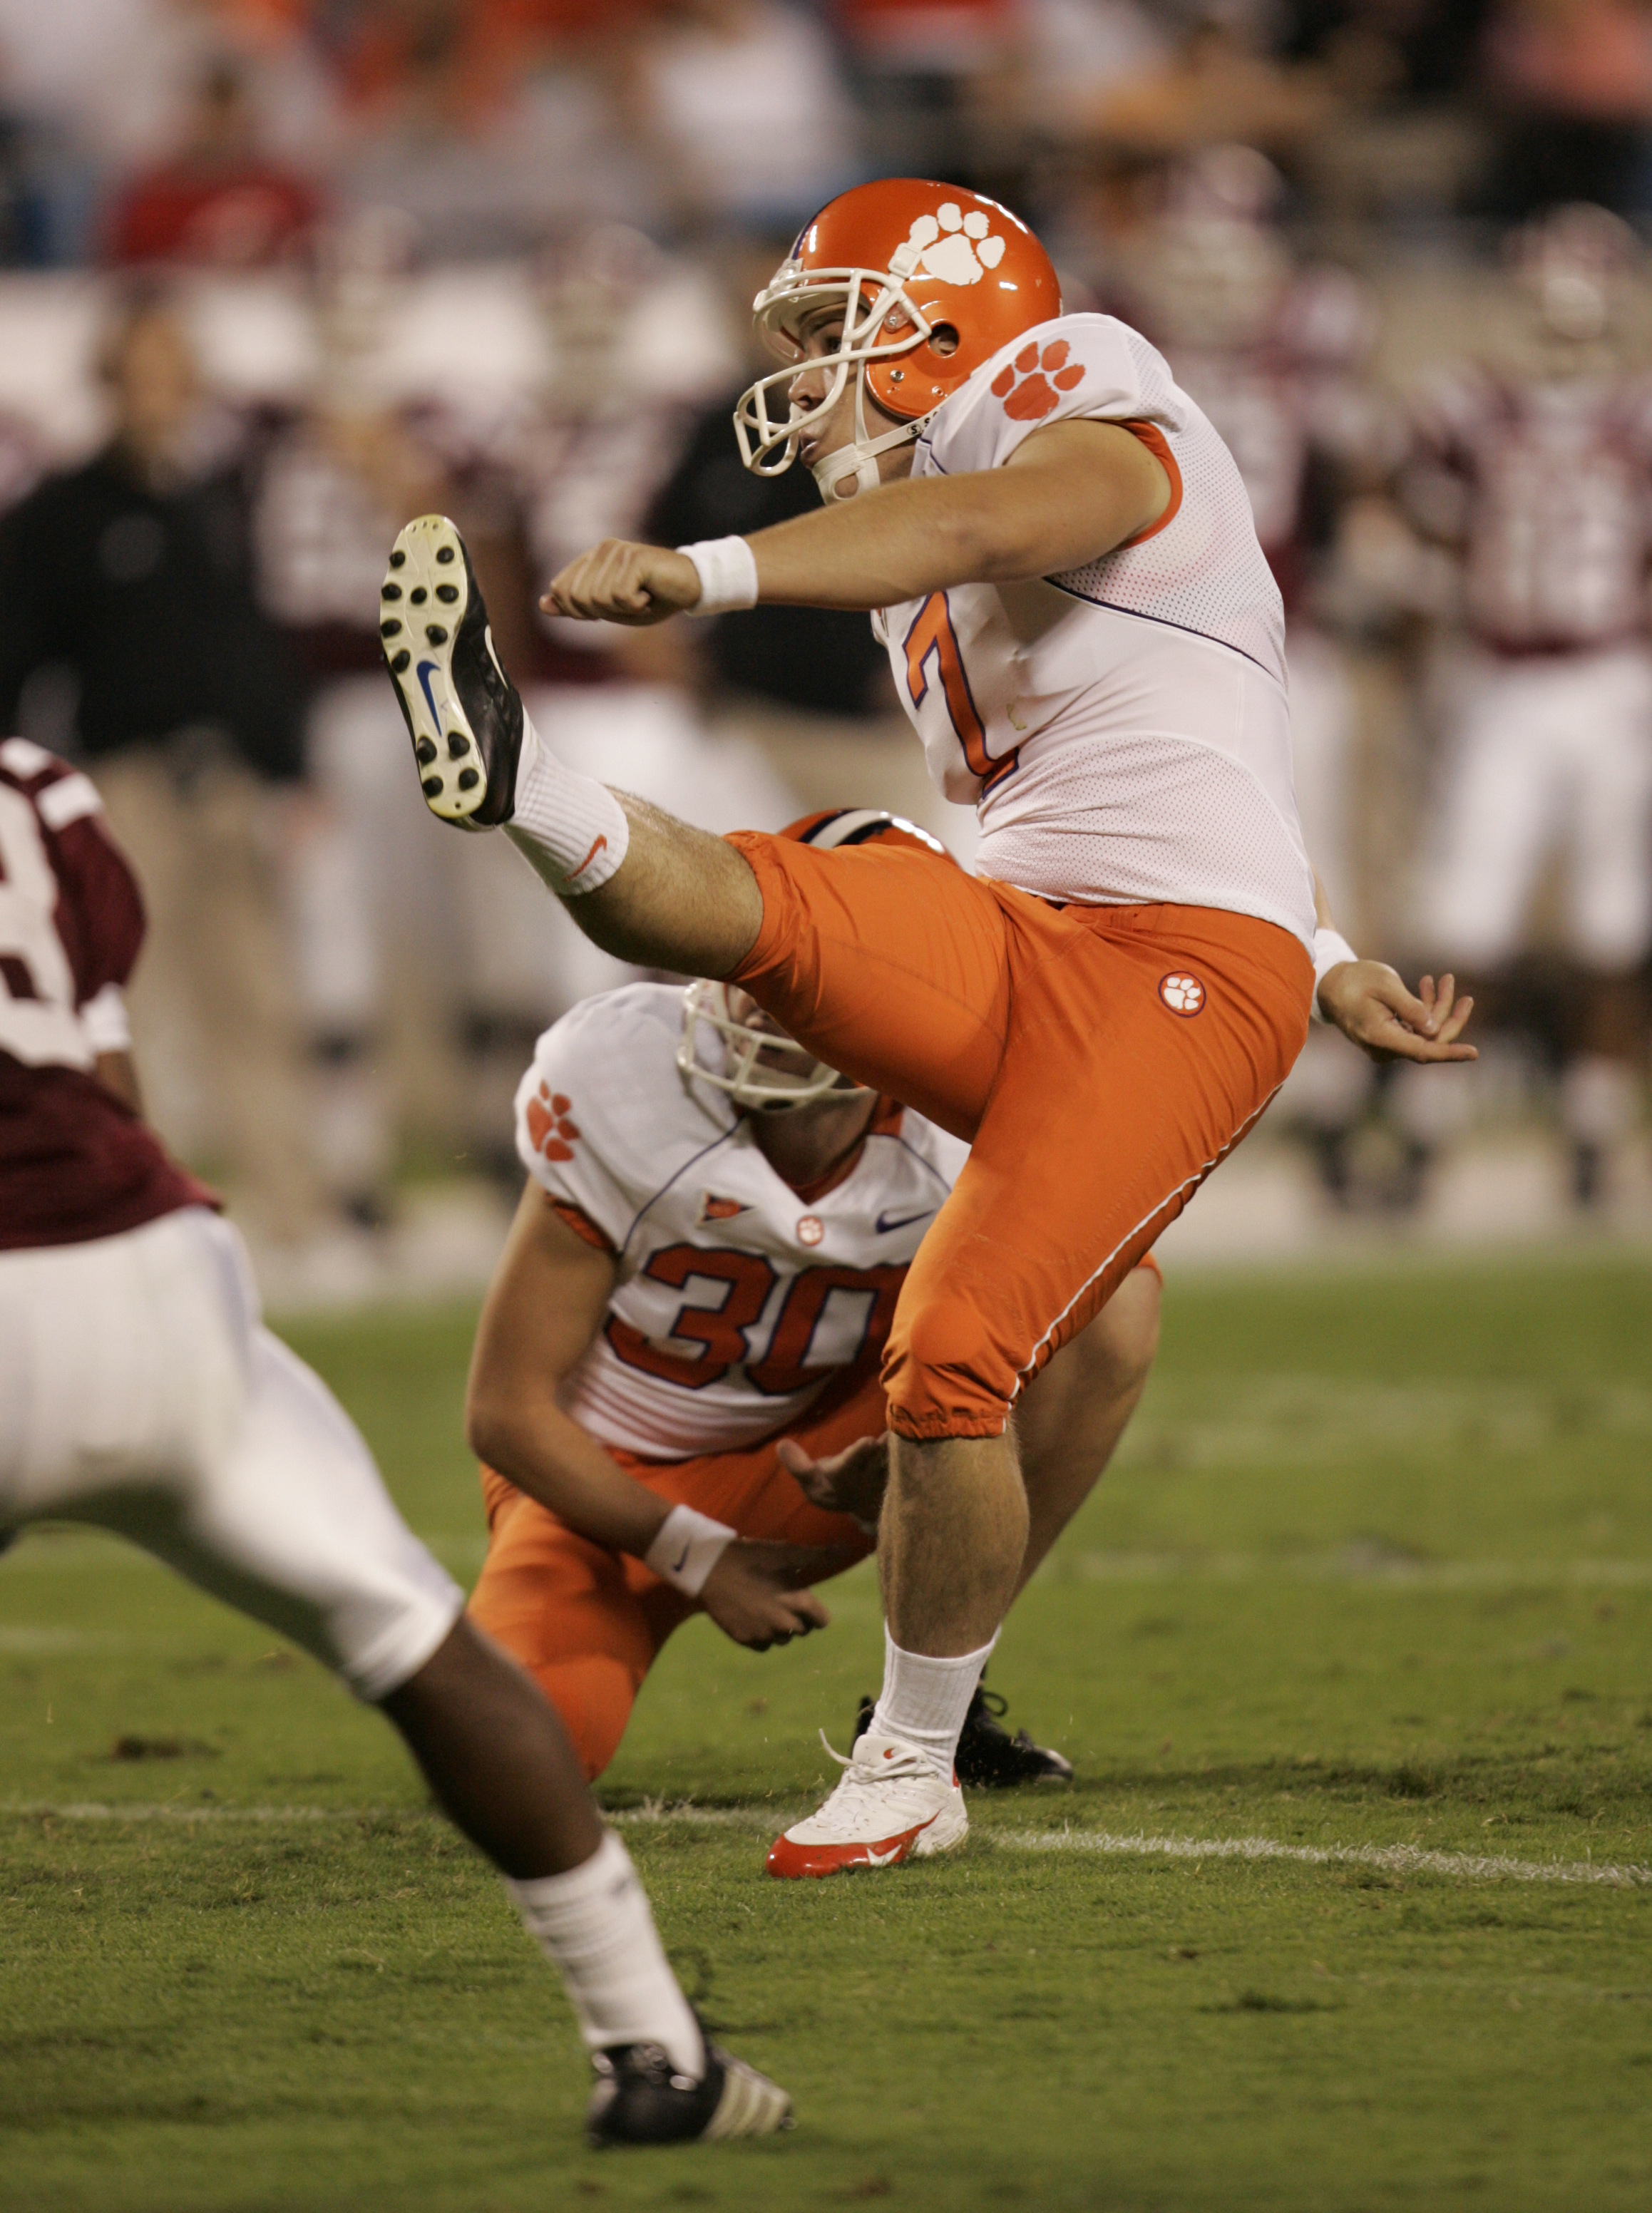 Jad Dean kicks for Clemson University in 2006.